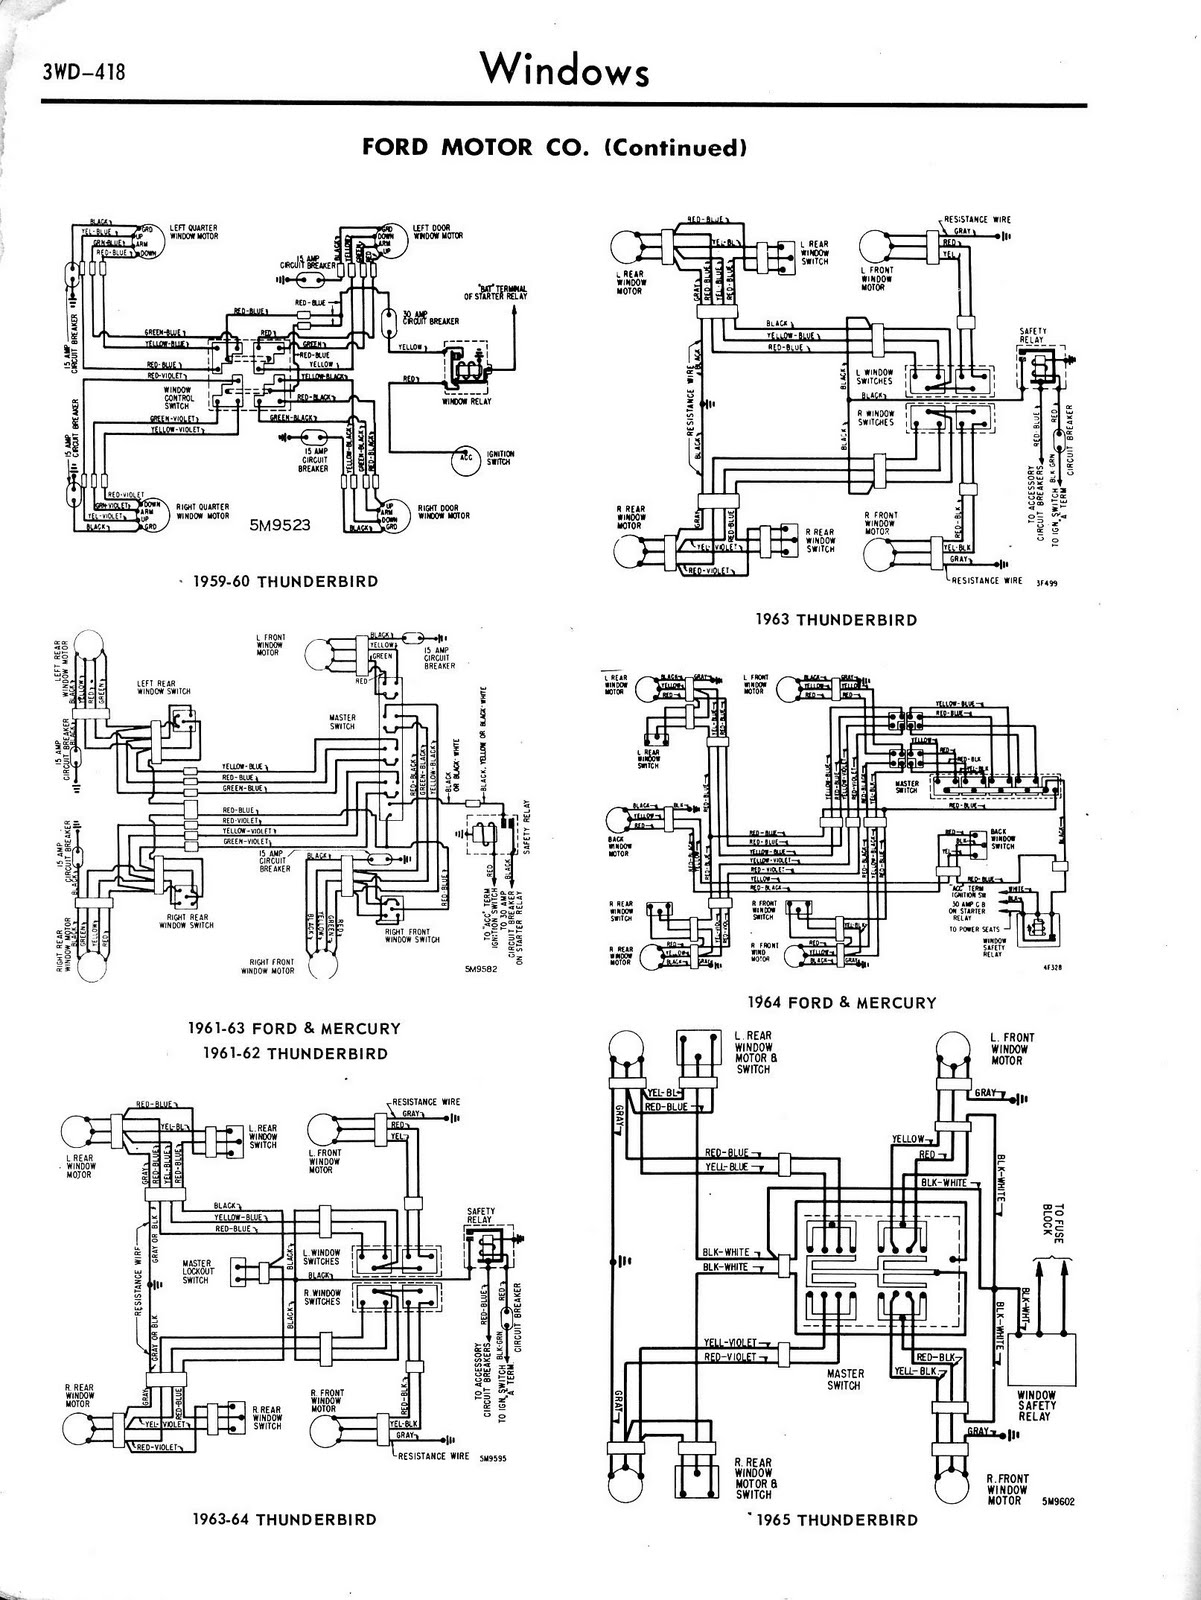 92 Thunderbird Fuse Box Everything About Wiring Diagram Ford Library Rh 30 Kaufmed De 74